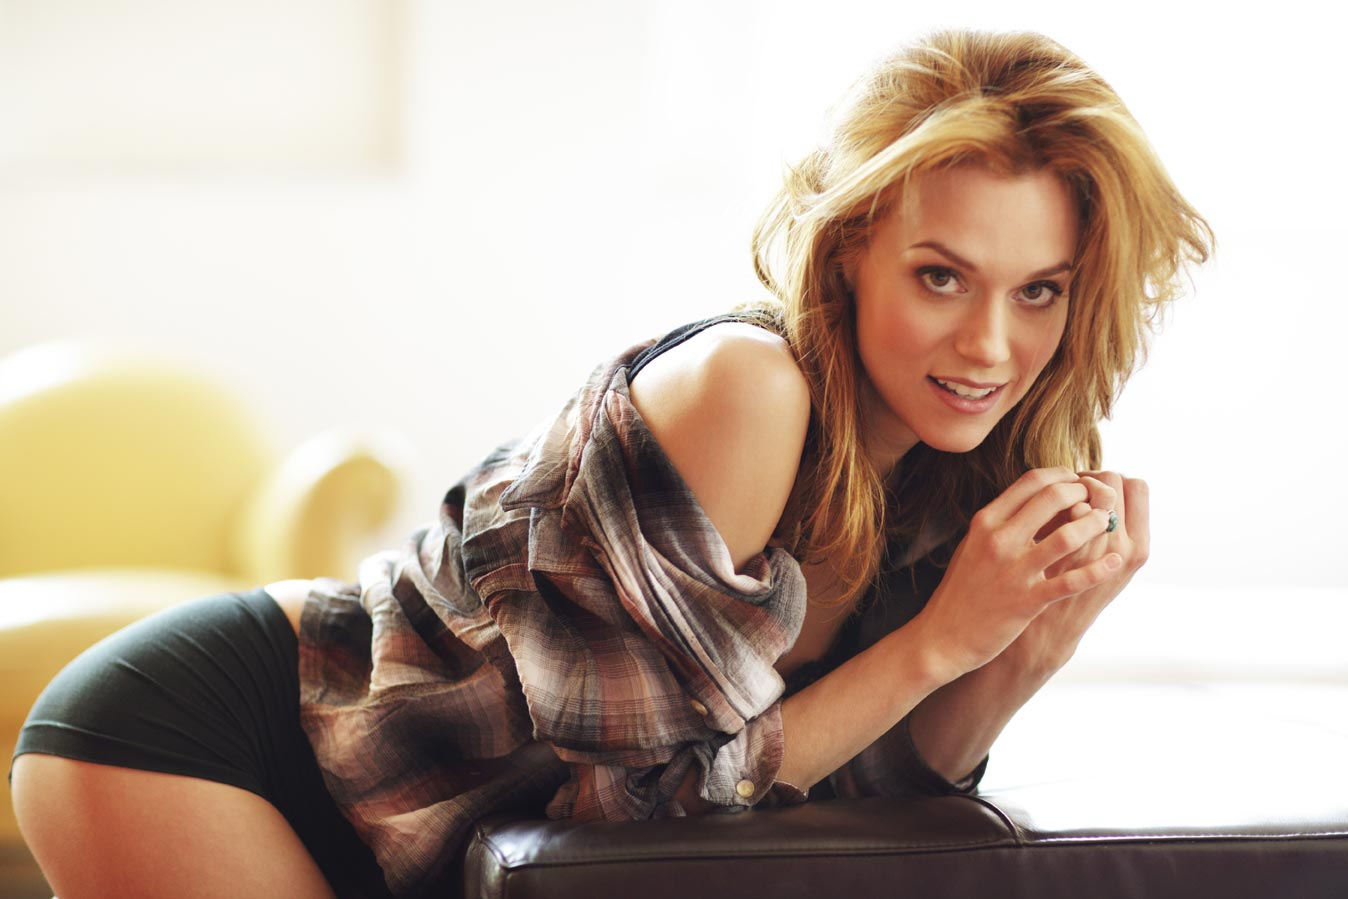 Hilarie burton wallpapers high resolution and quality download - Walpepar photos ...